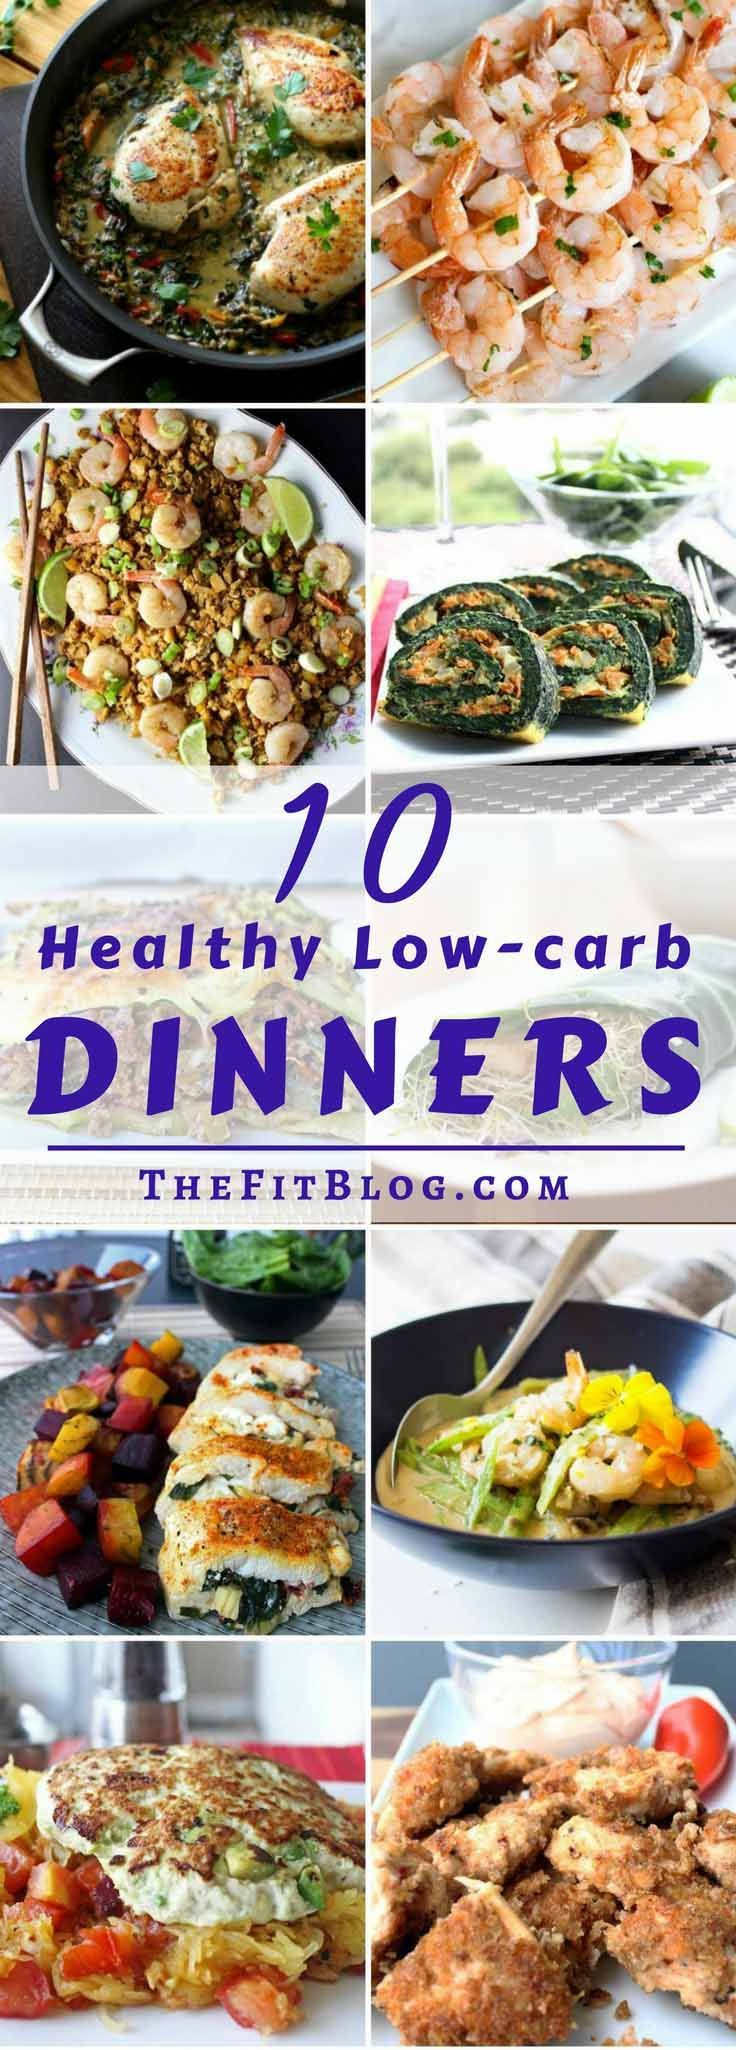 17 best images about healthy living on pinterest healthy for Healthy recipes for dinner low carb